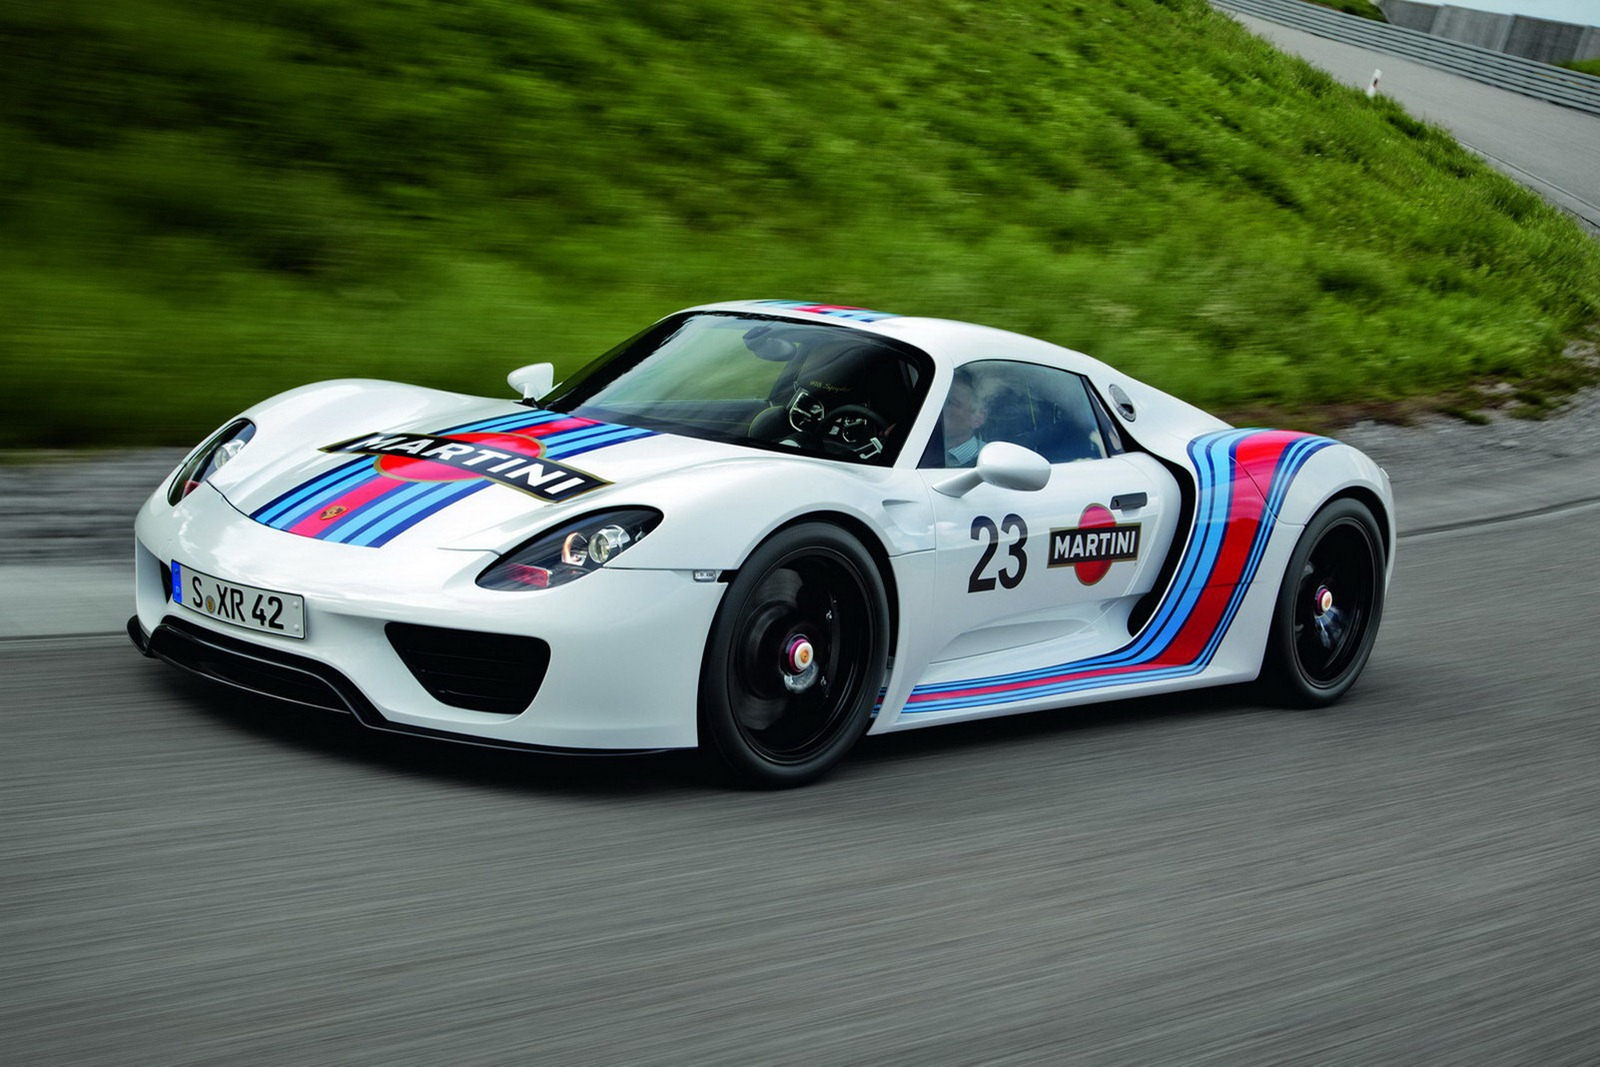 Porsche Confirmed That The 918 Spyder Has Set A Lap Time On Nürburgring Nordschleife Of 7 Minutes 14 Seconds Places It In Cur Top 5